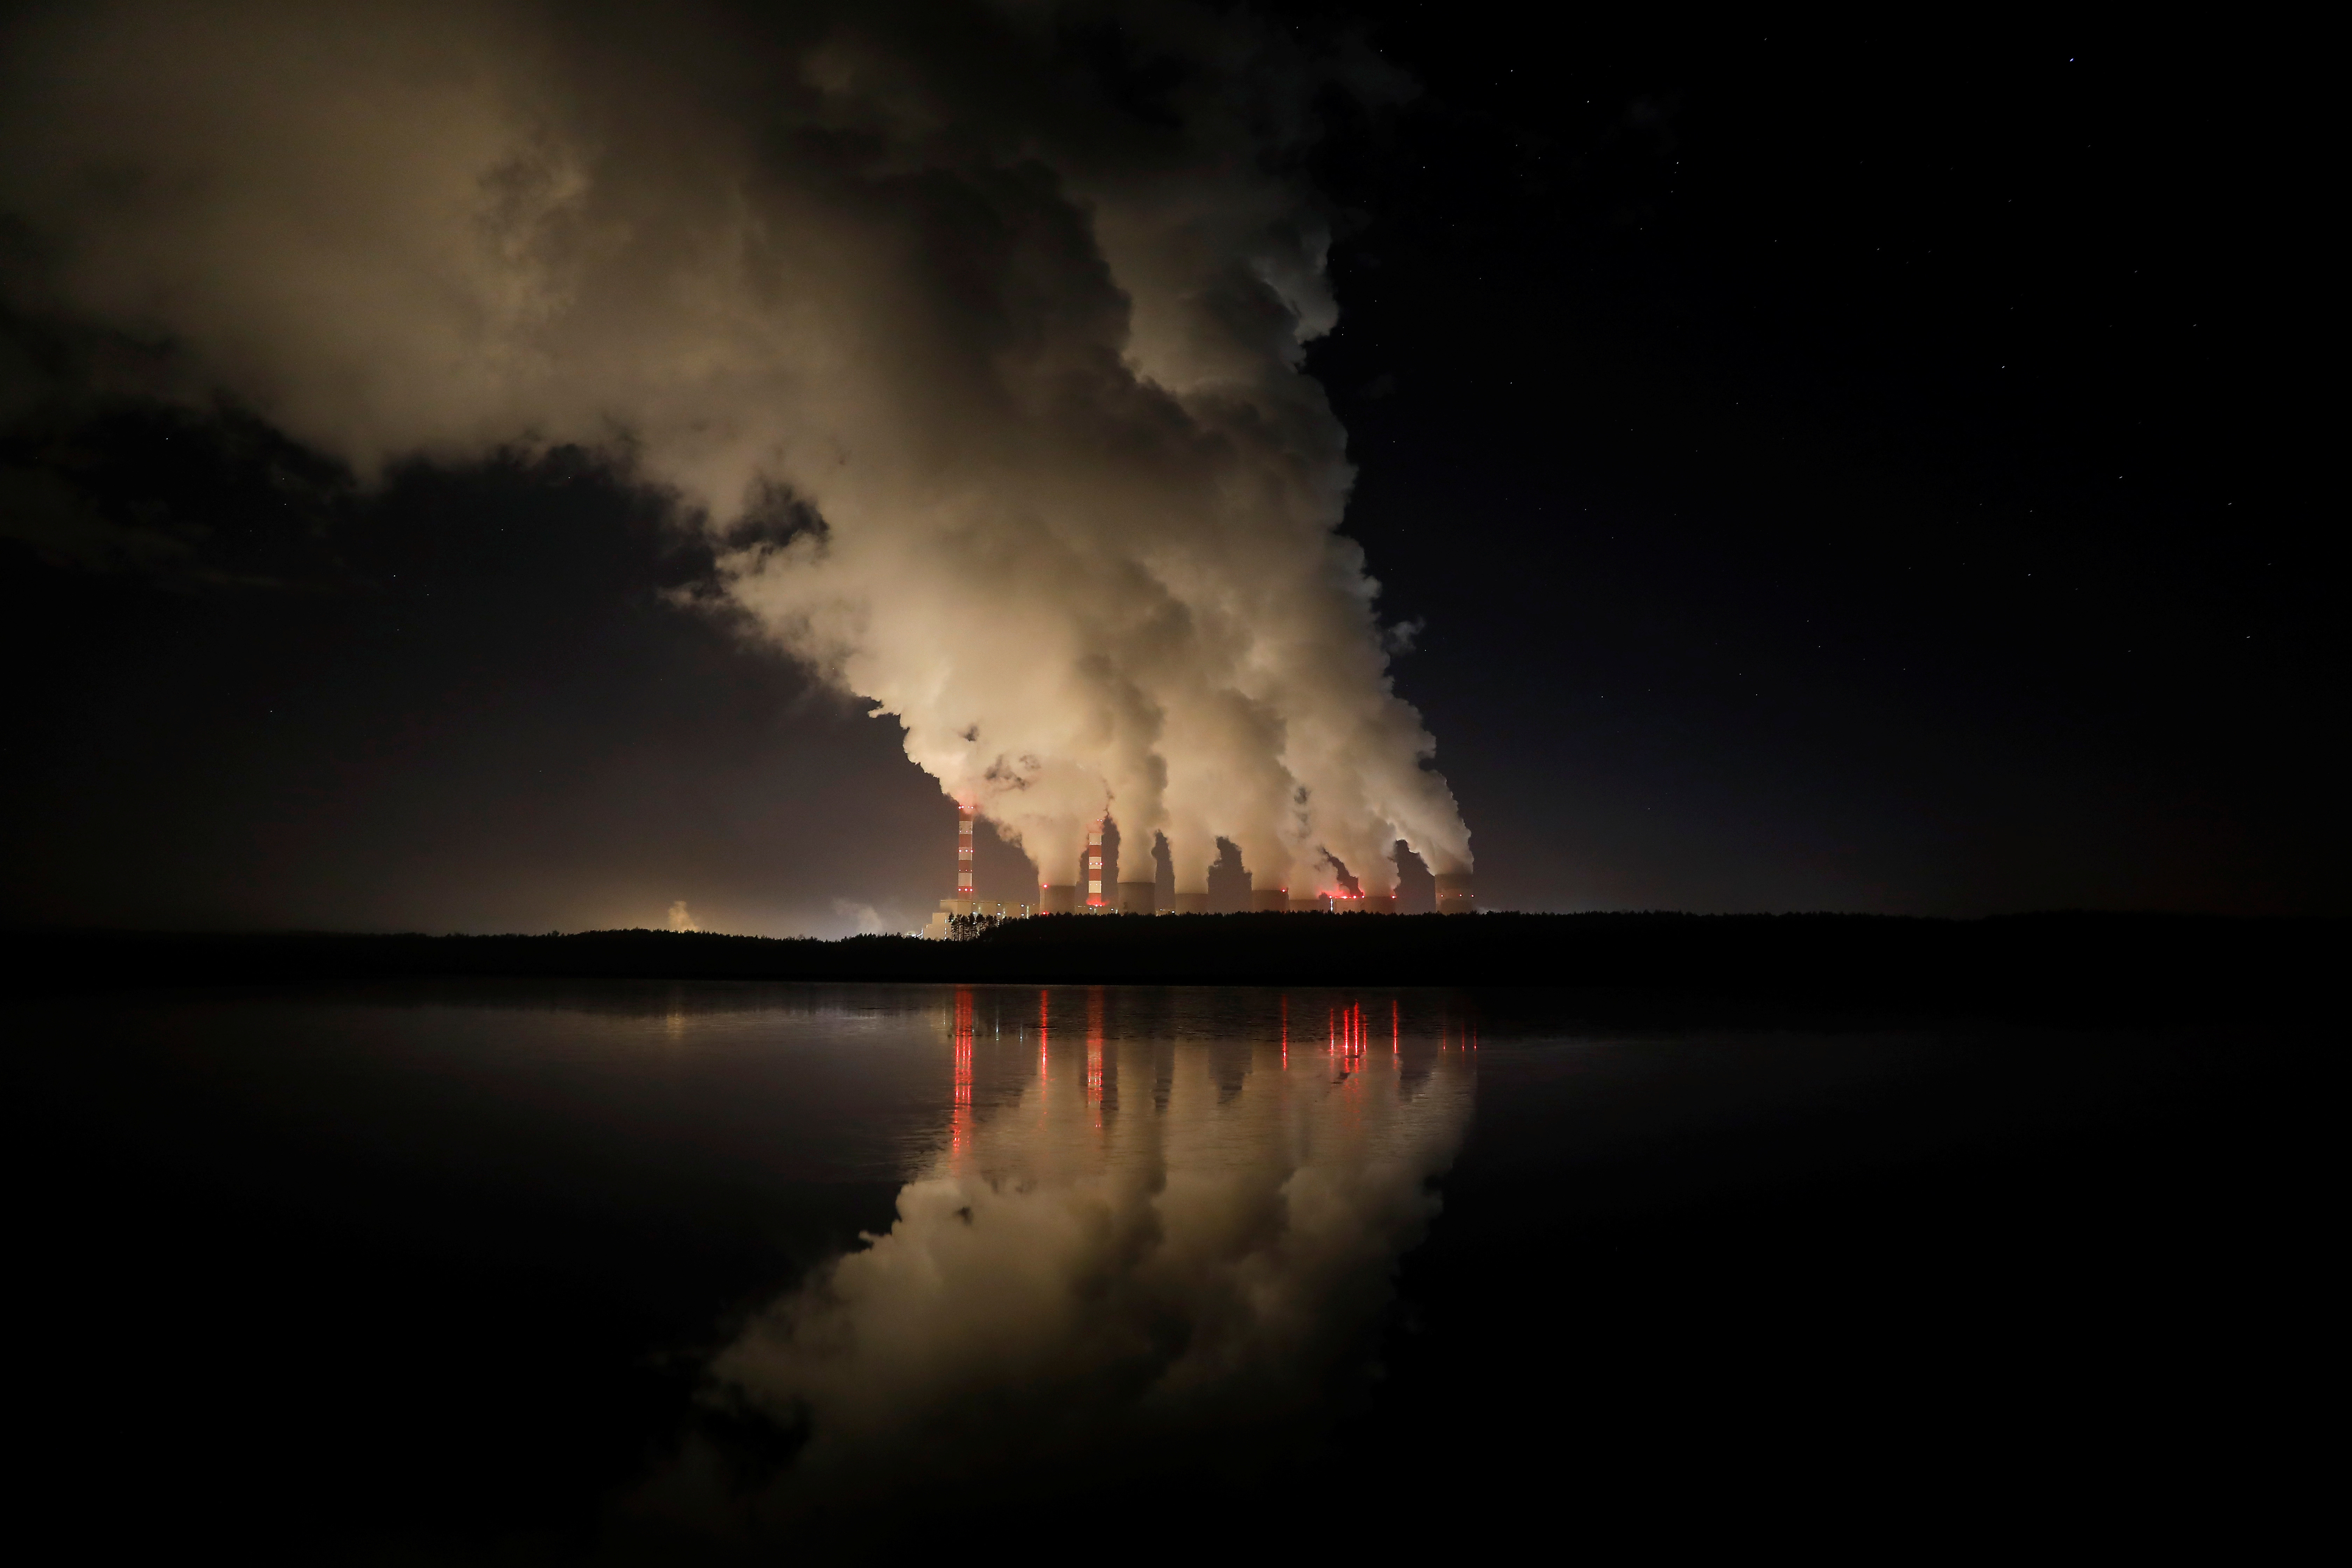 Smoke and steam billows from Belchatow Power Station, Europe's largest coal-fired power plant operated by PGE Group, at night near Belchatow, Poland December 5, 2018. Picture taken December 5, 2018